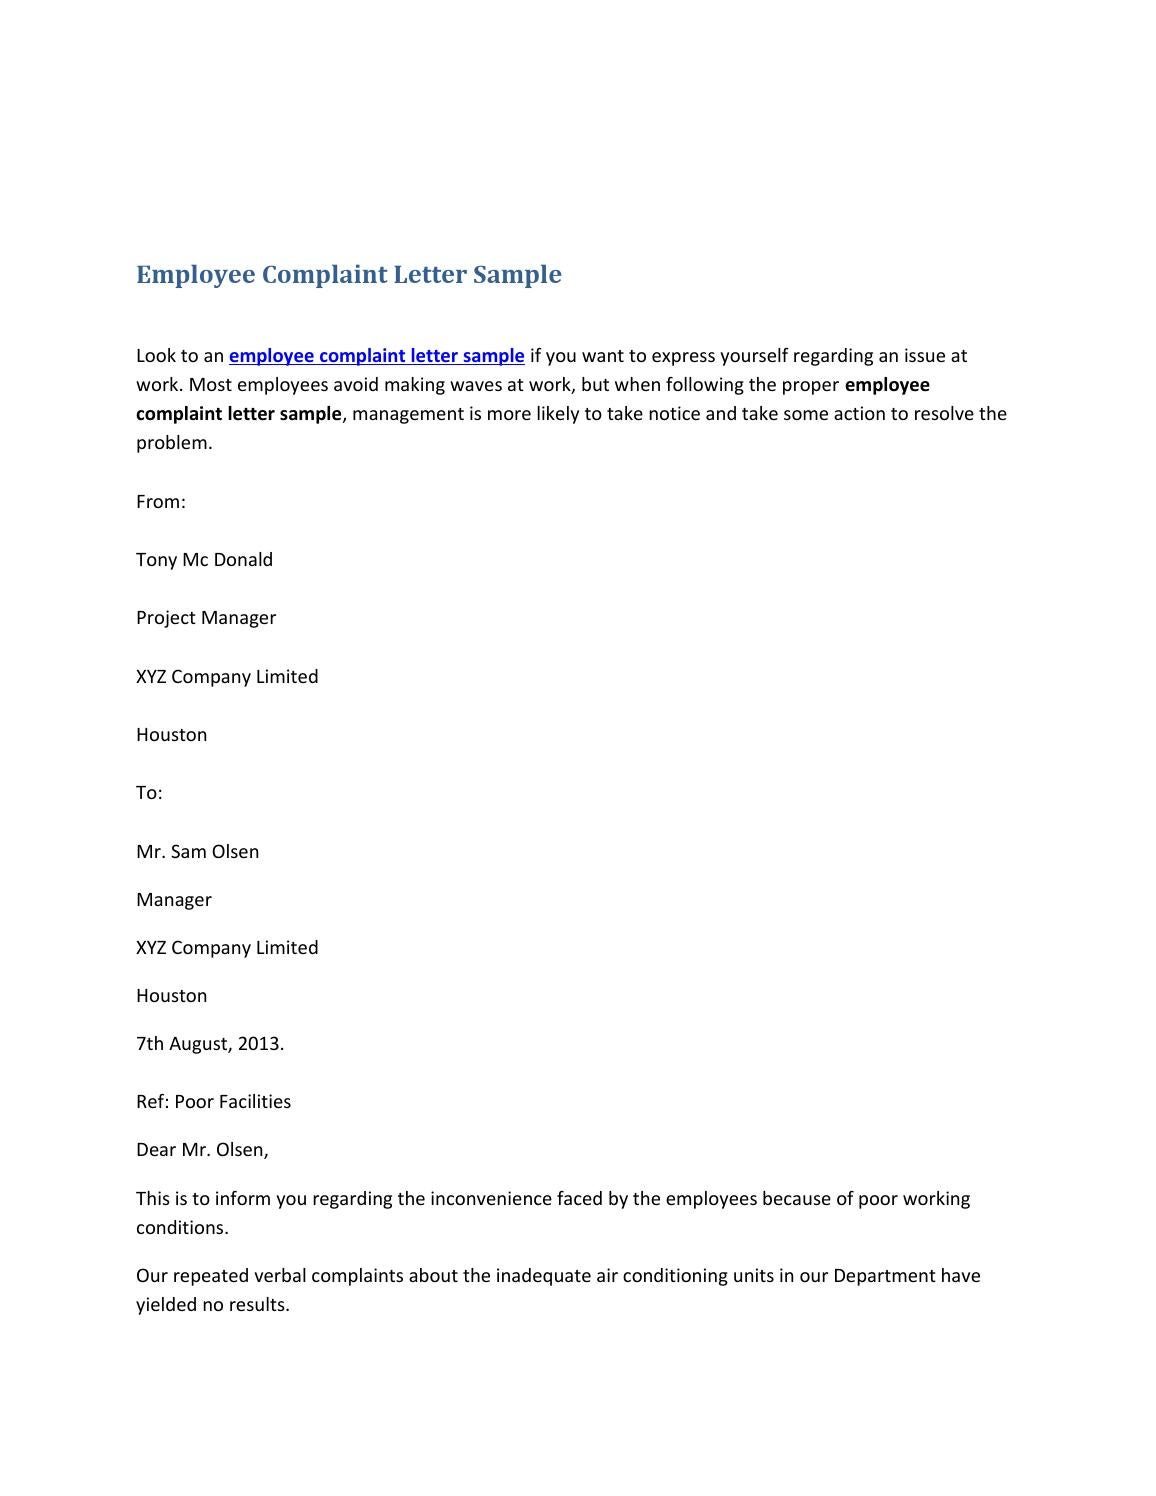 Employee Complaint Letter Sample by Shane Thomas issuu